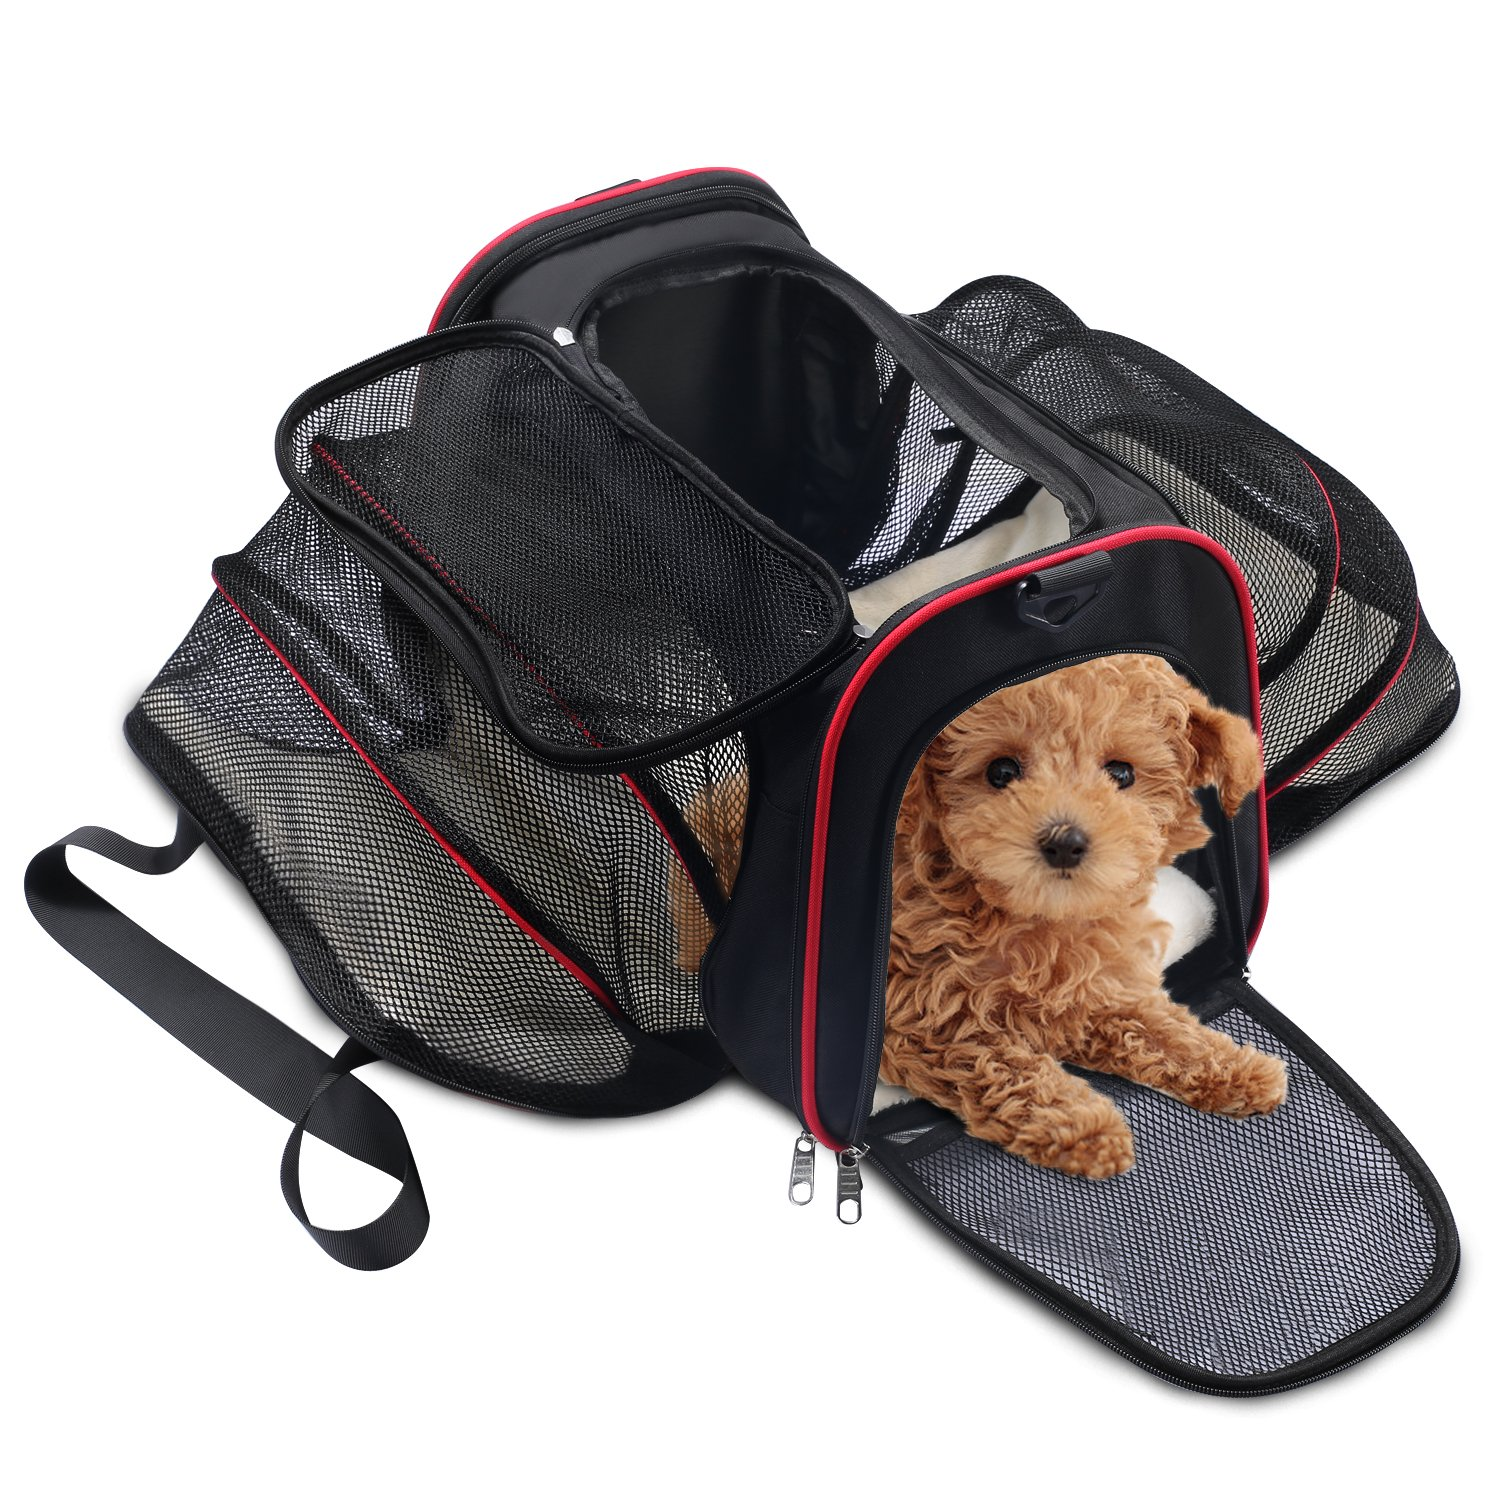 WOT I Soft Side Pet Carrier, Pet Carrier for Dogs & Cats, Expandable Soft Pet Carrier with Removable Fleece Mat for Easy Carry on Luggage, Travel Bag for Small Animals, Portable Handbag, Black